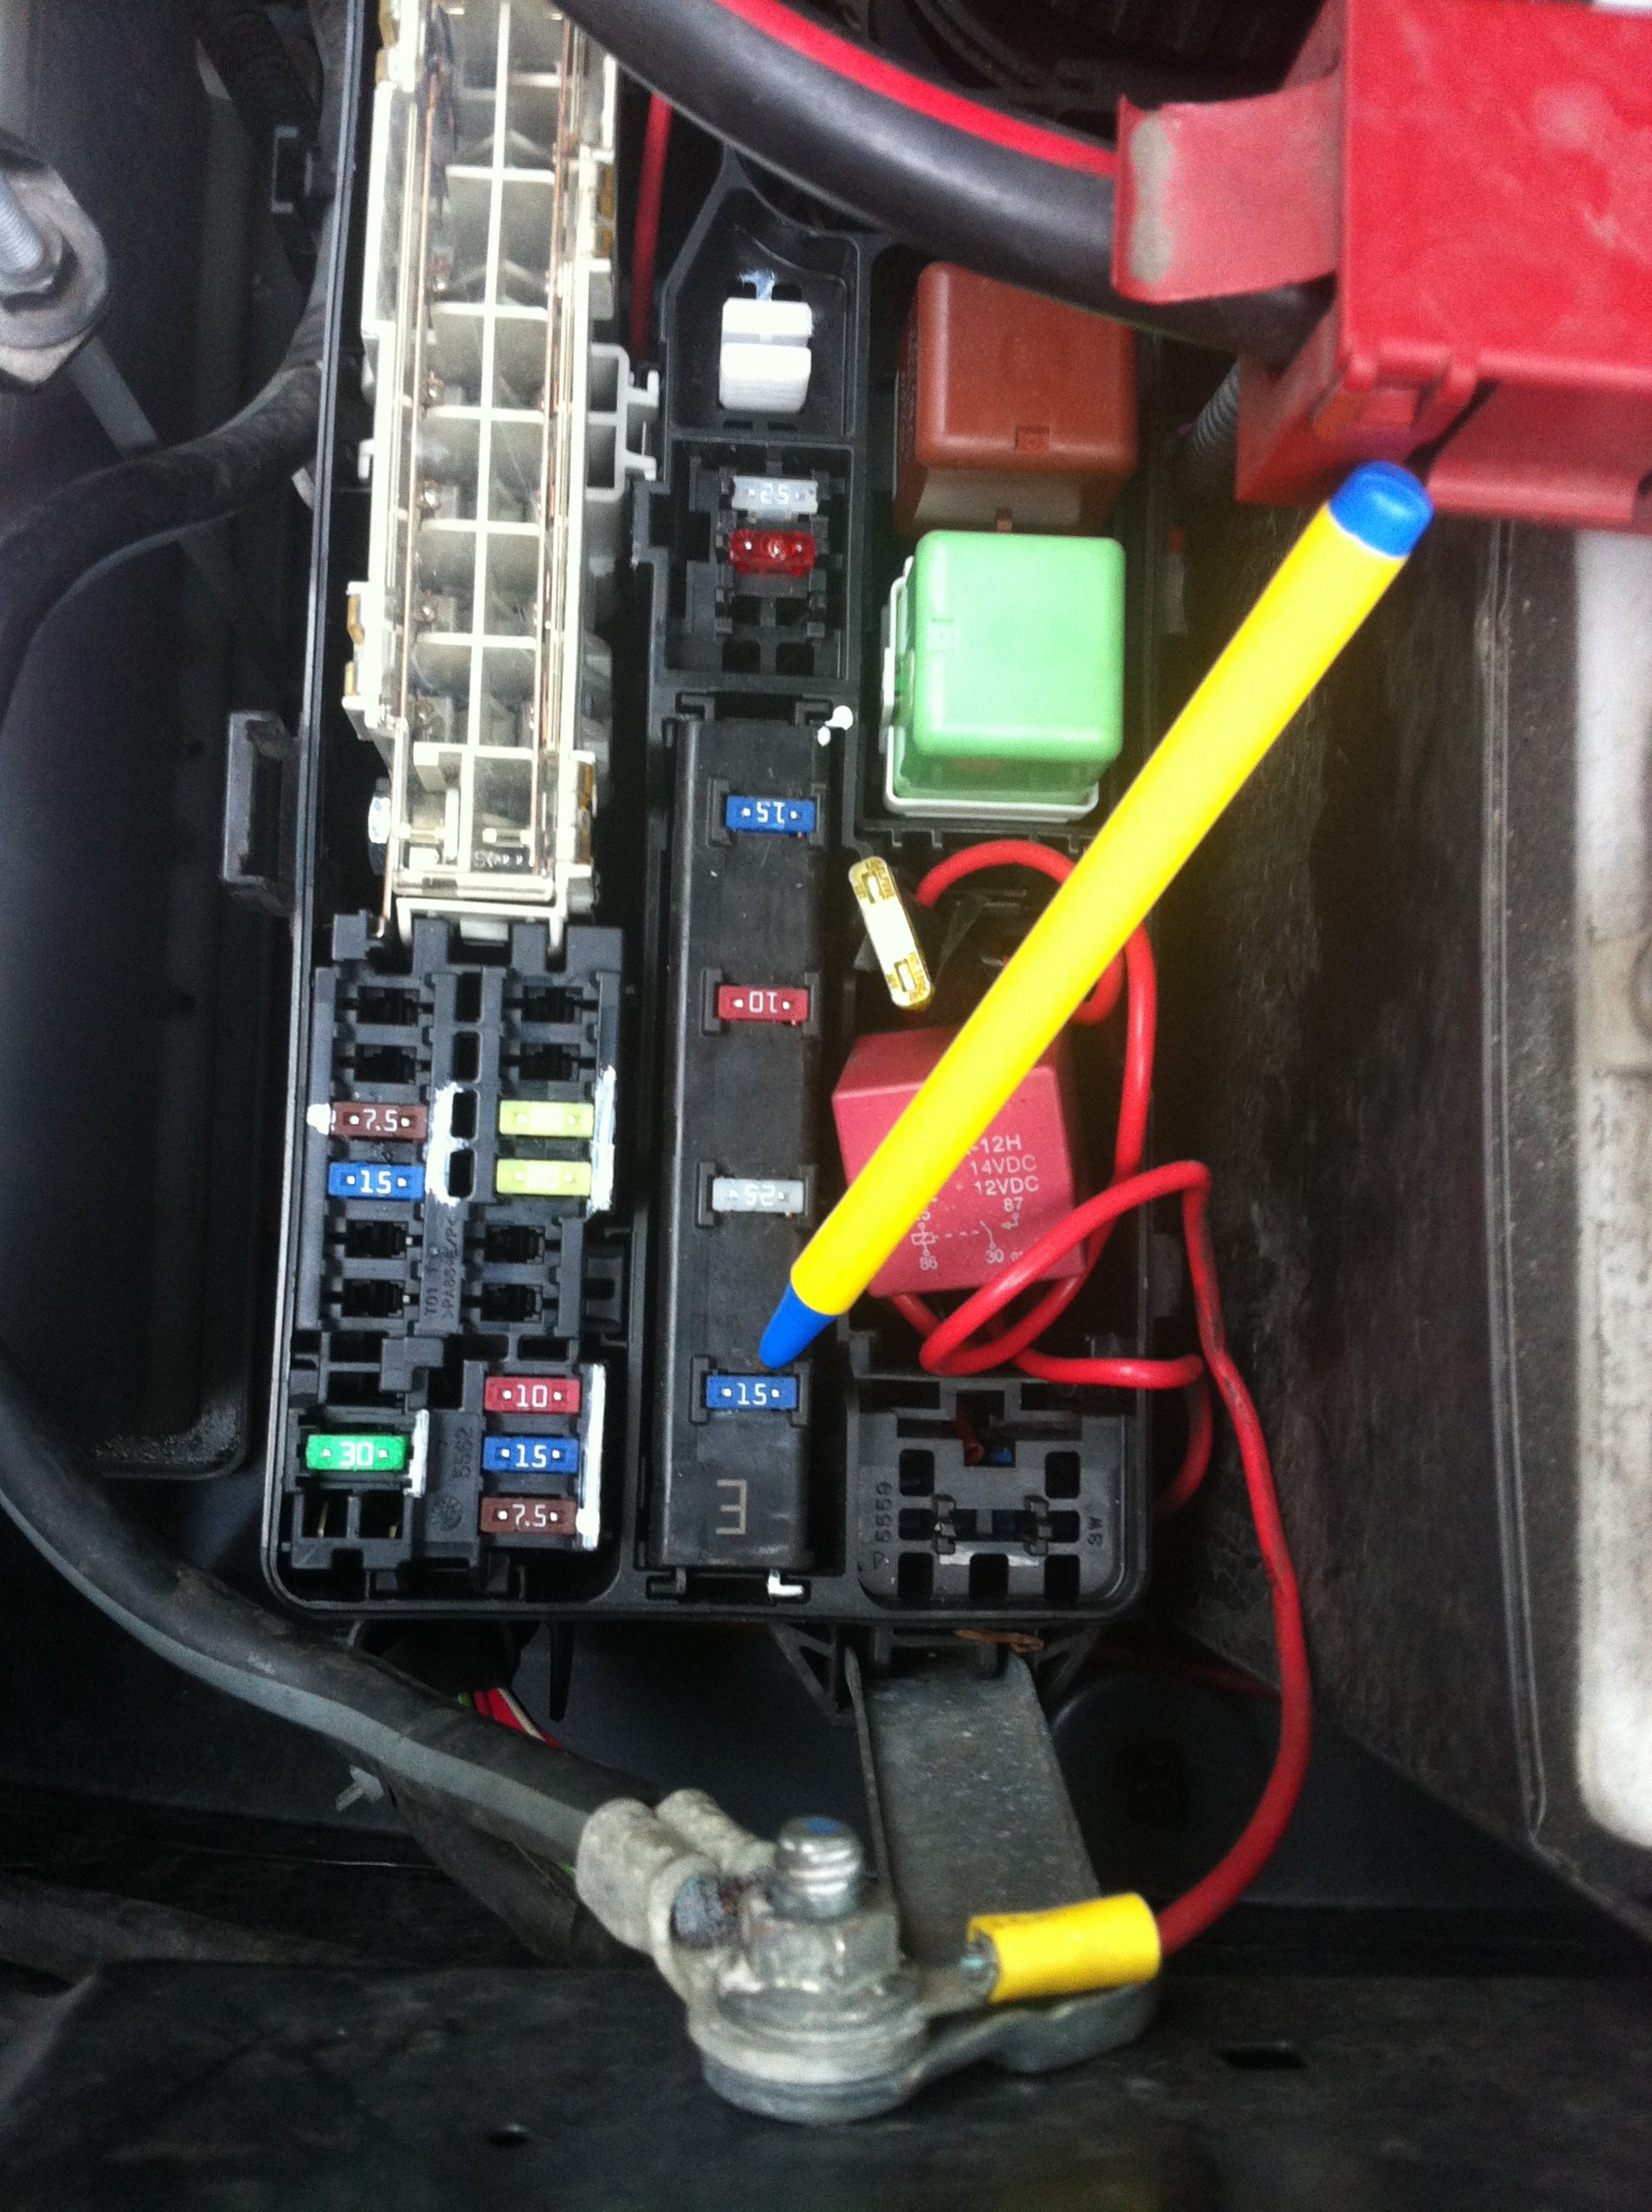 2010 Mustang Fuse Box Custom Project Wiring Diagram For 2012 Ford Need To Locate The Magnetic Clutch Relay A C Air Location